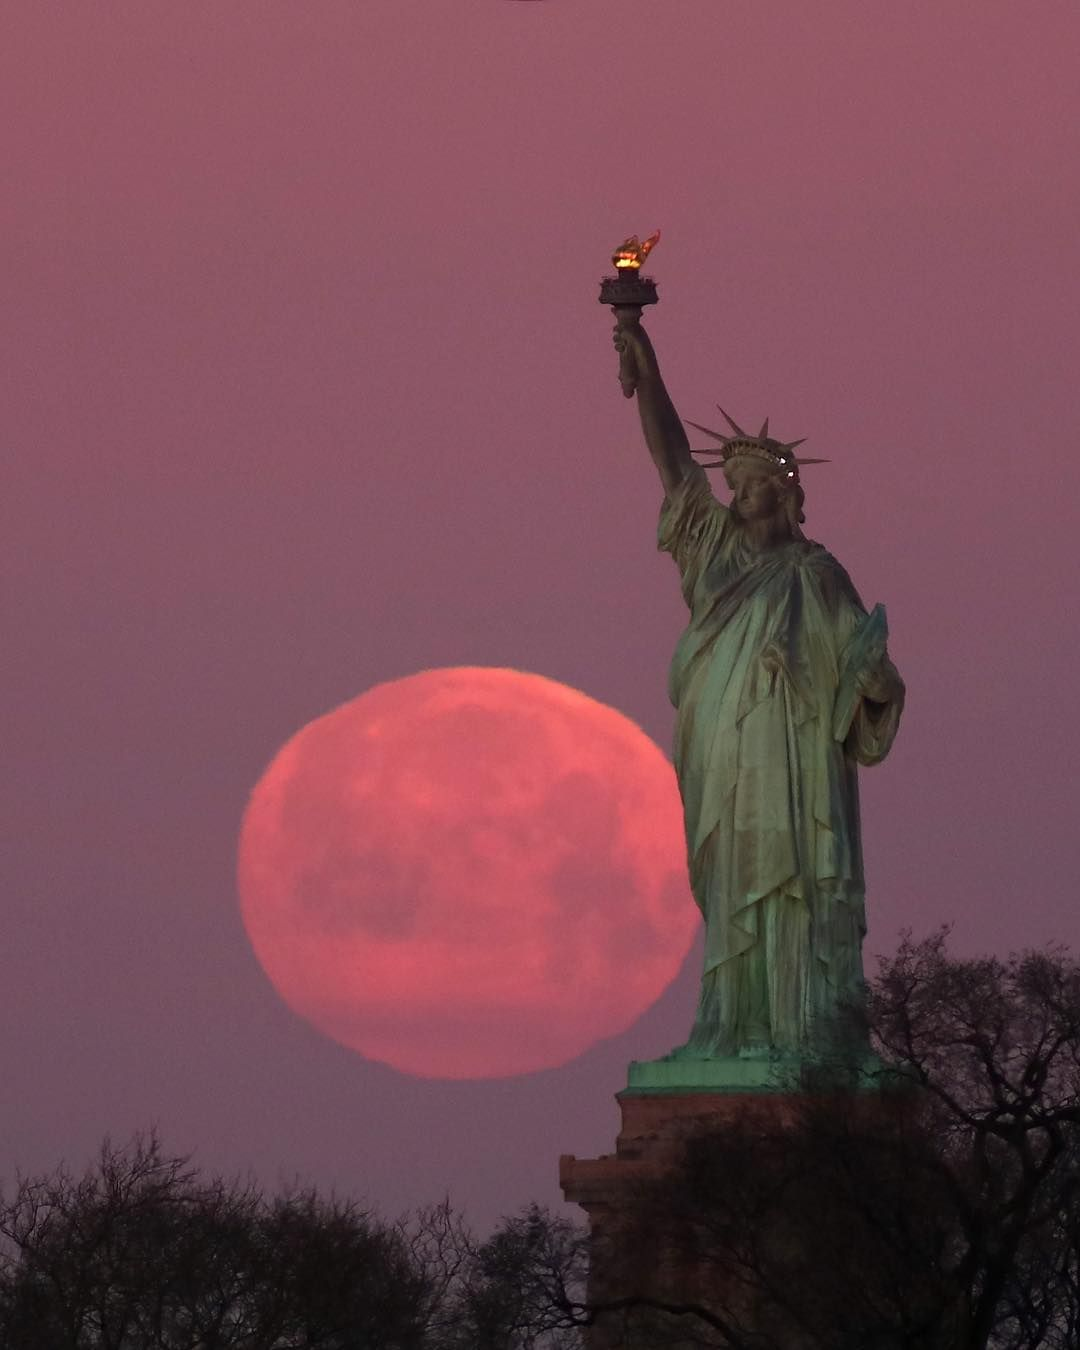 Town Country On Instagram A Super Snow Moon Sky As Seen In New York Yesterday S Picturesque Supermoon Was The Largest Of The Year Statue Statue Of Liberty